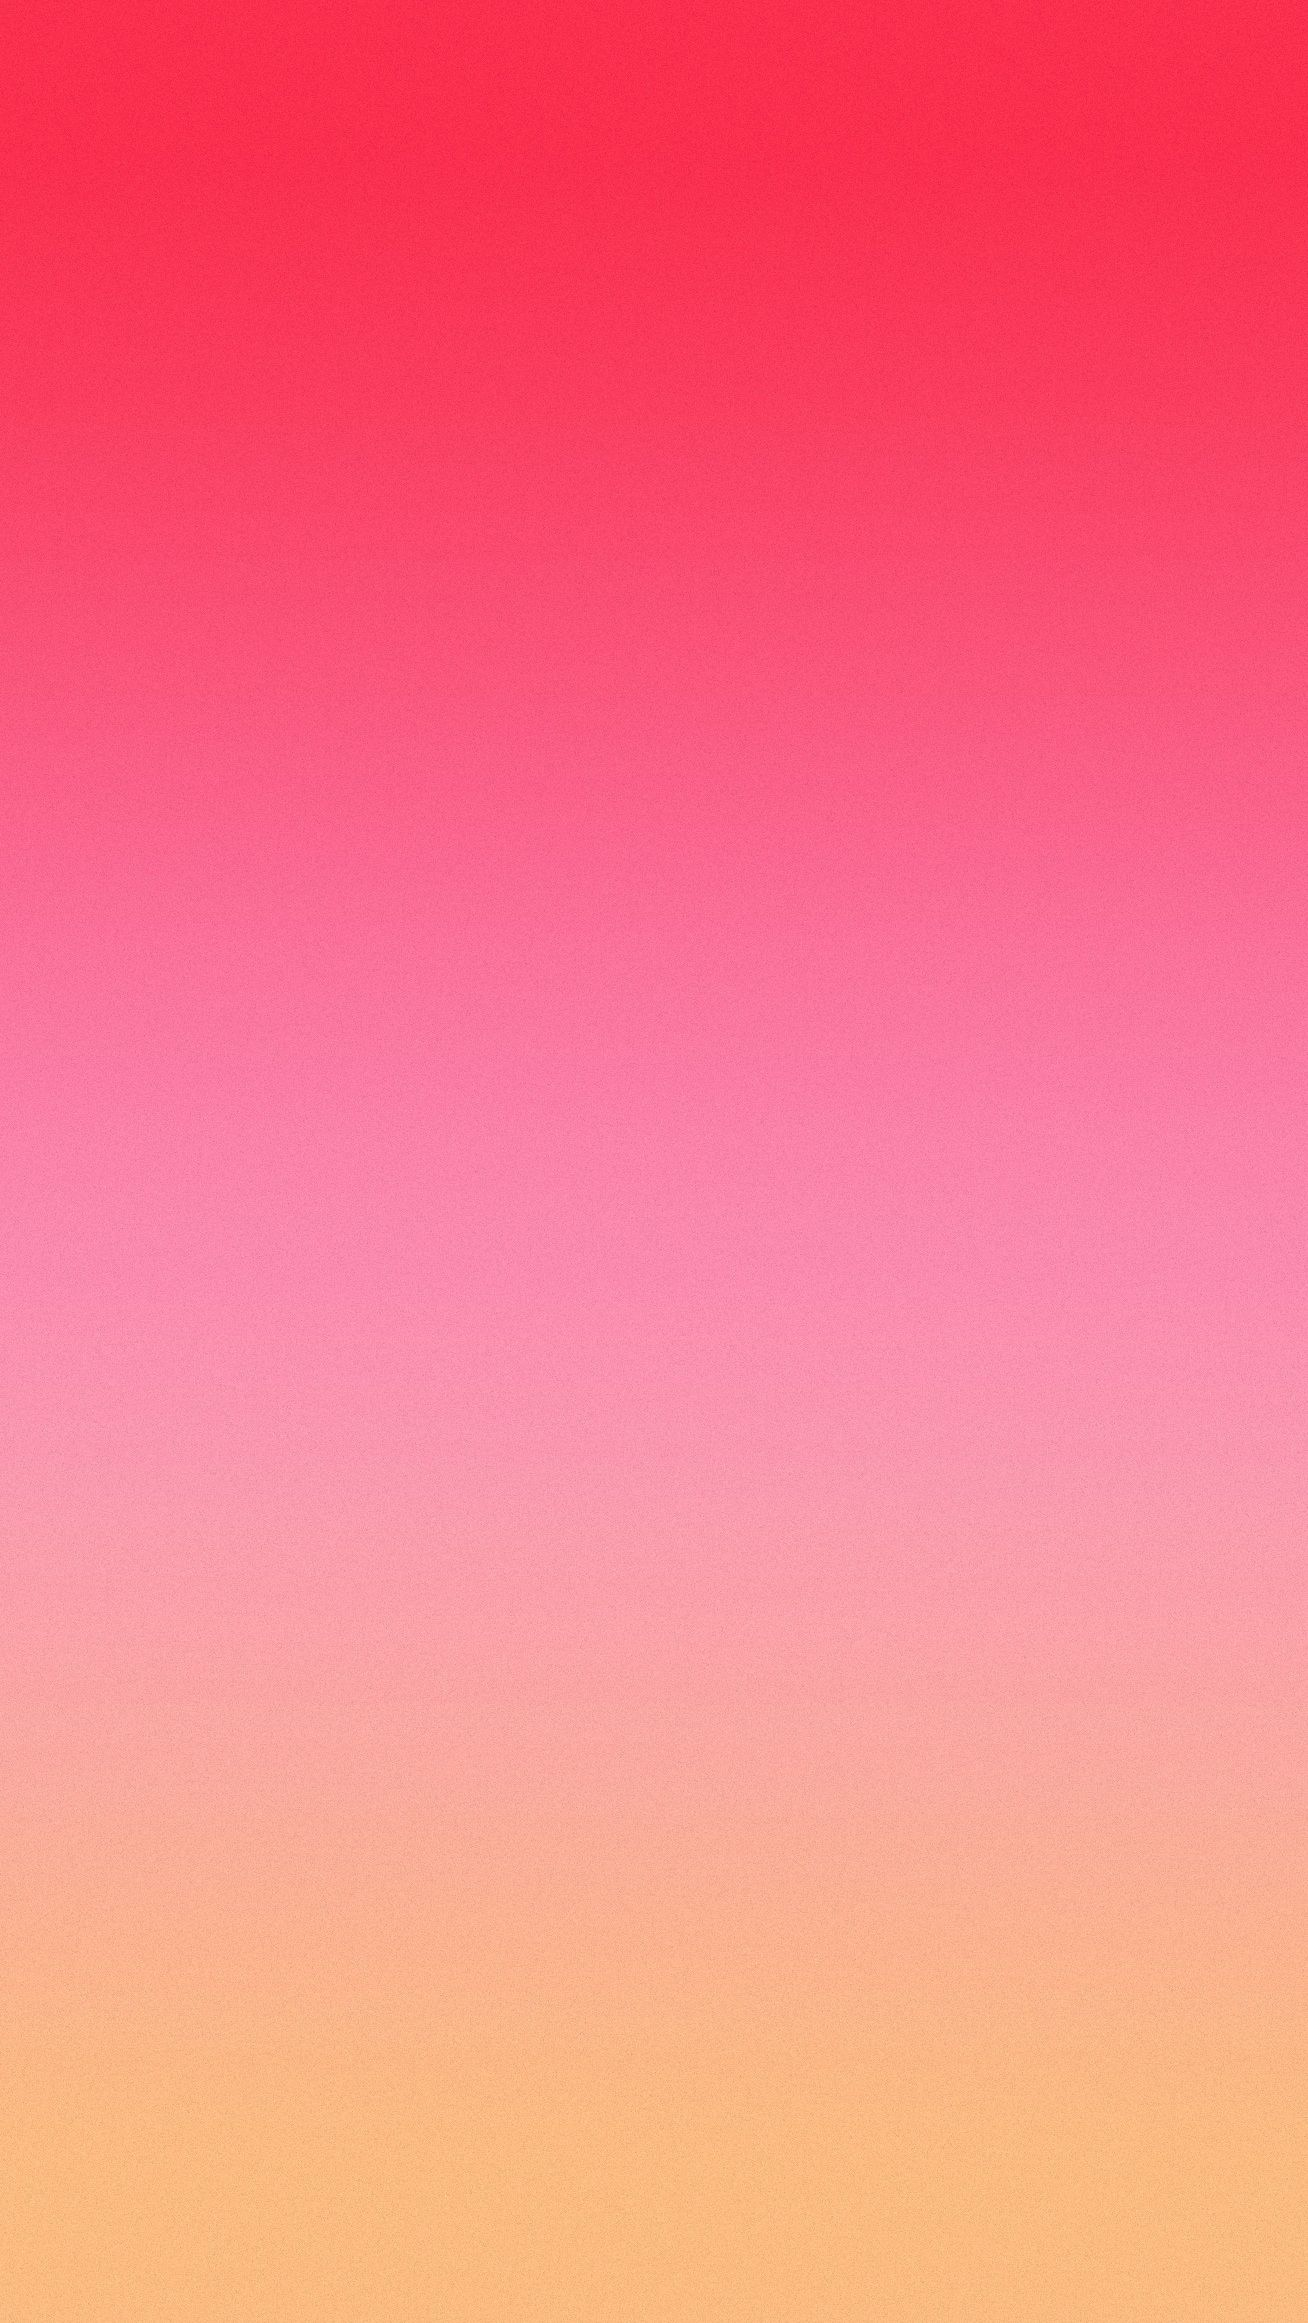 Beautiful Pink Orange Gradient Background Iphone Wallpaper